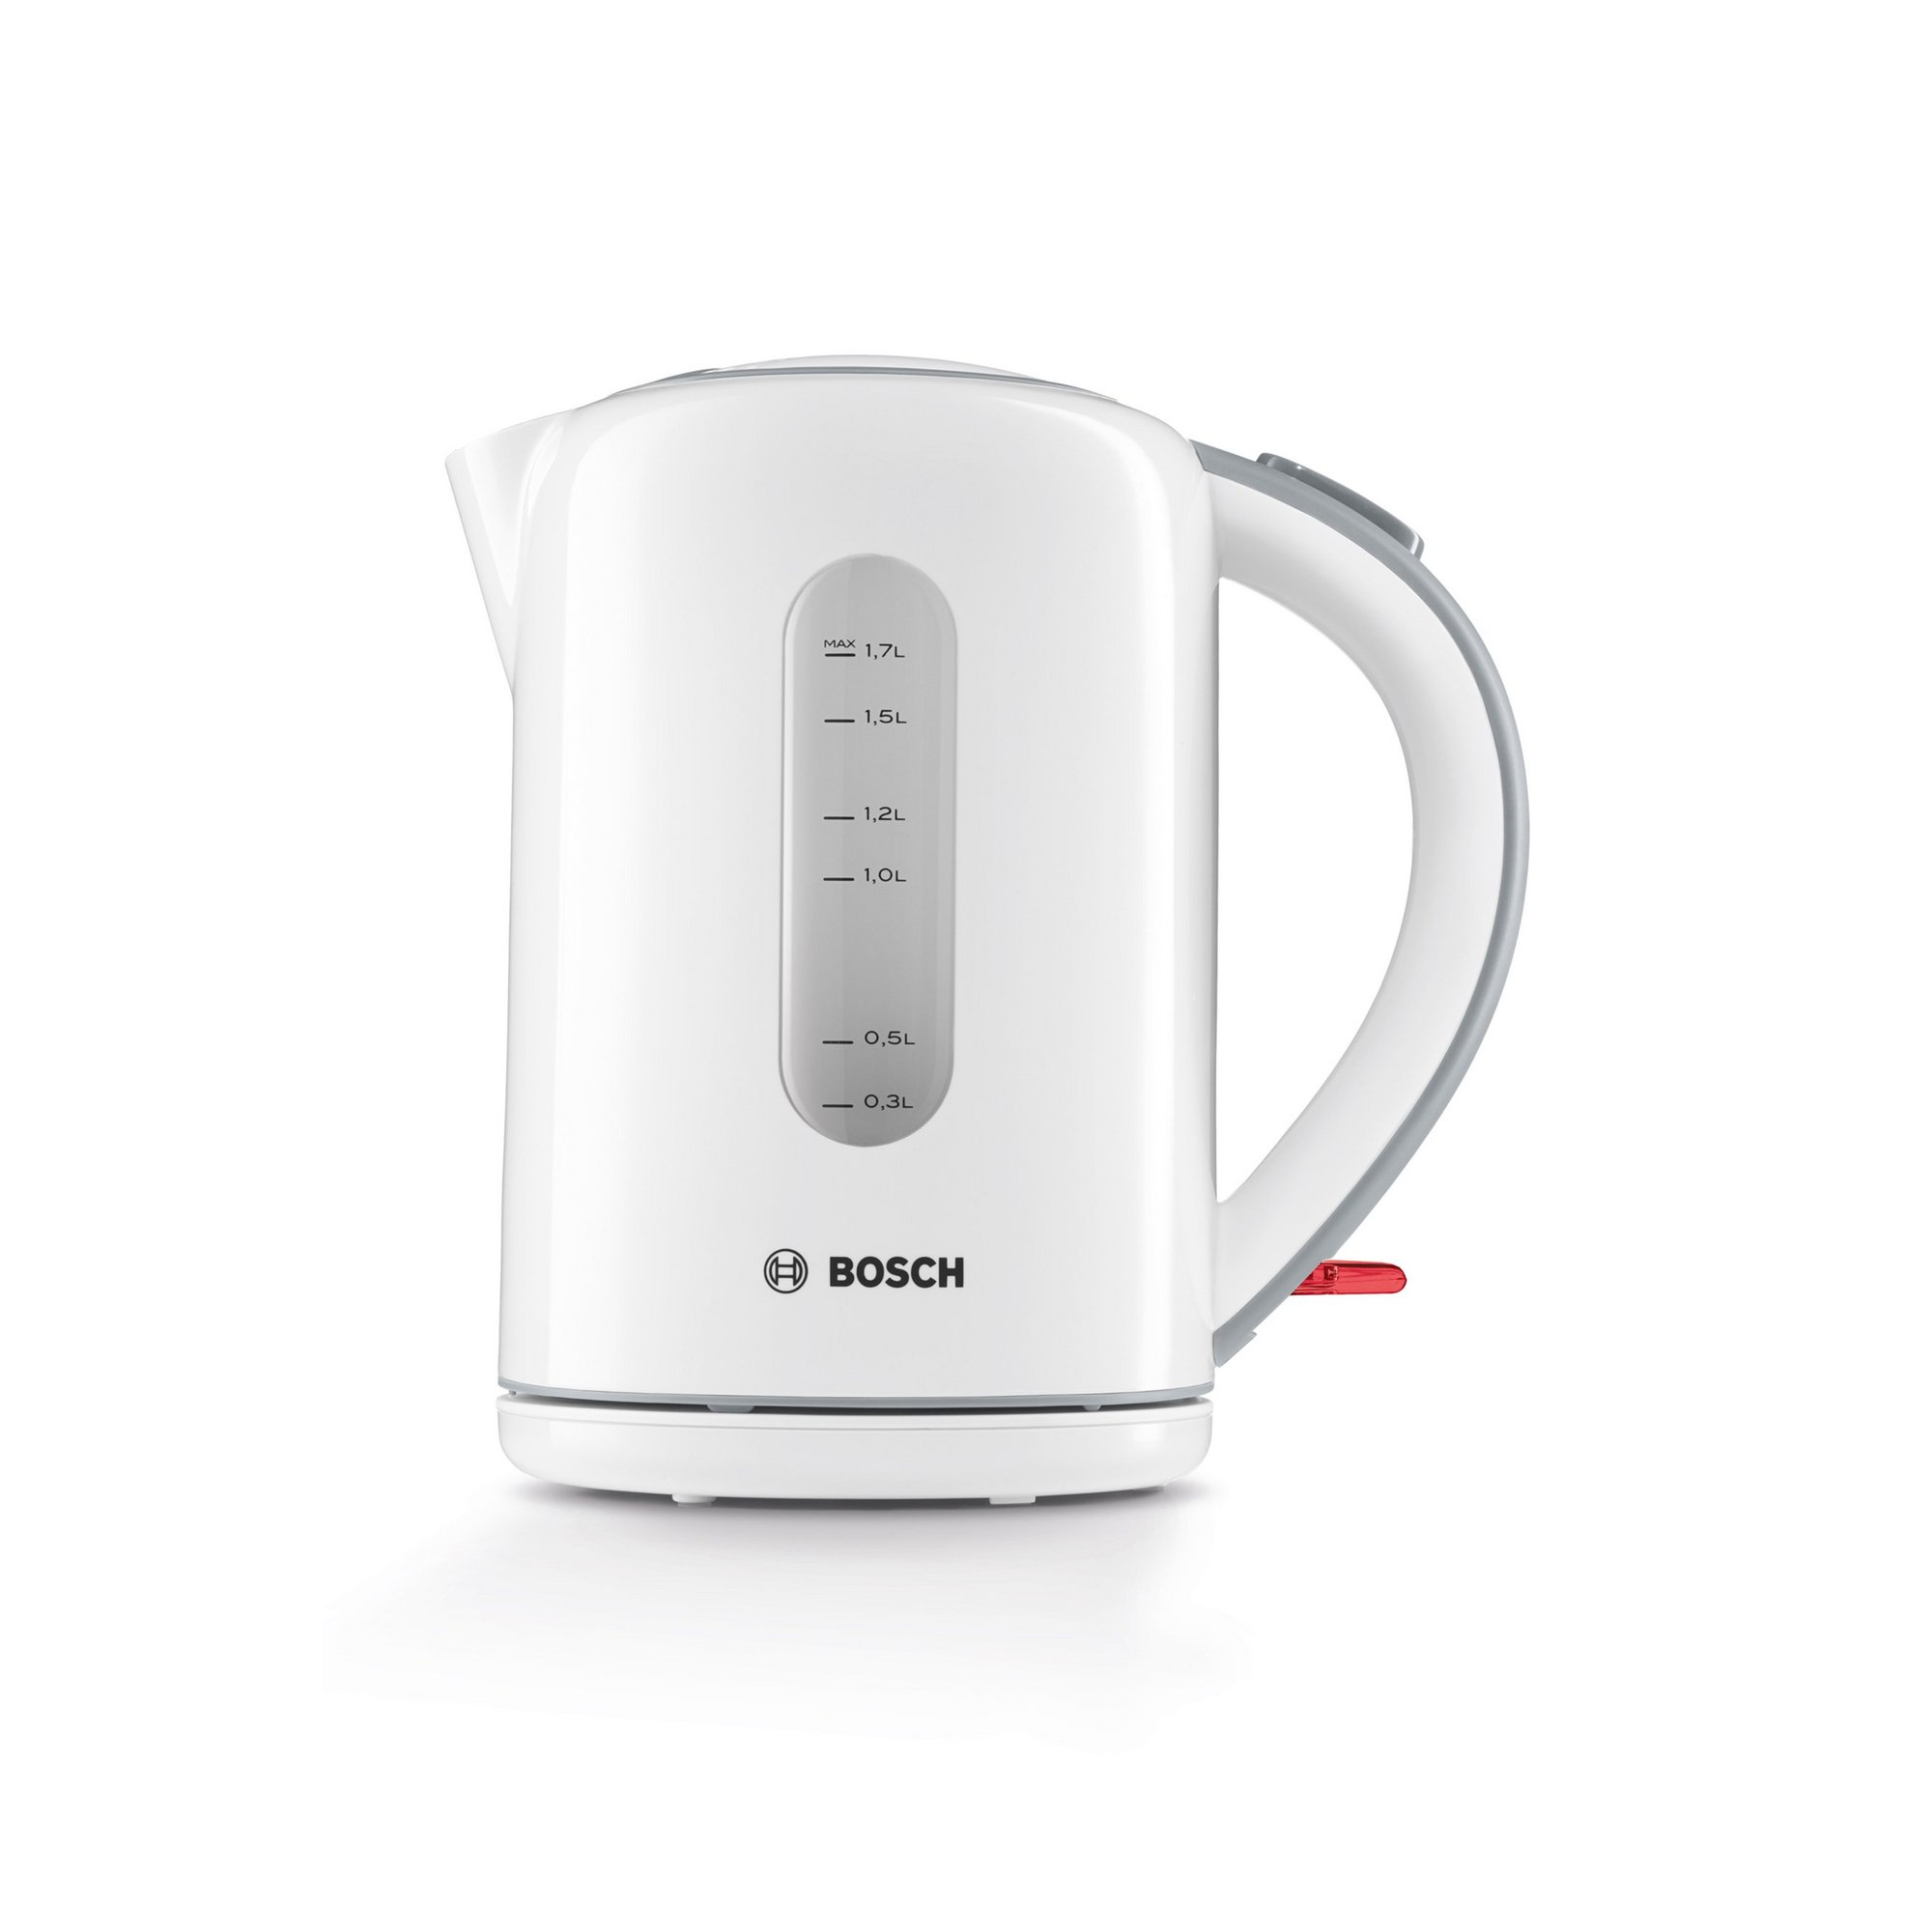 Image of Bosch Villiage Cordless White Kettle